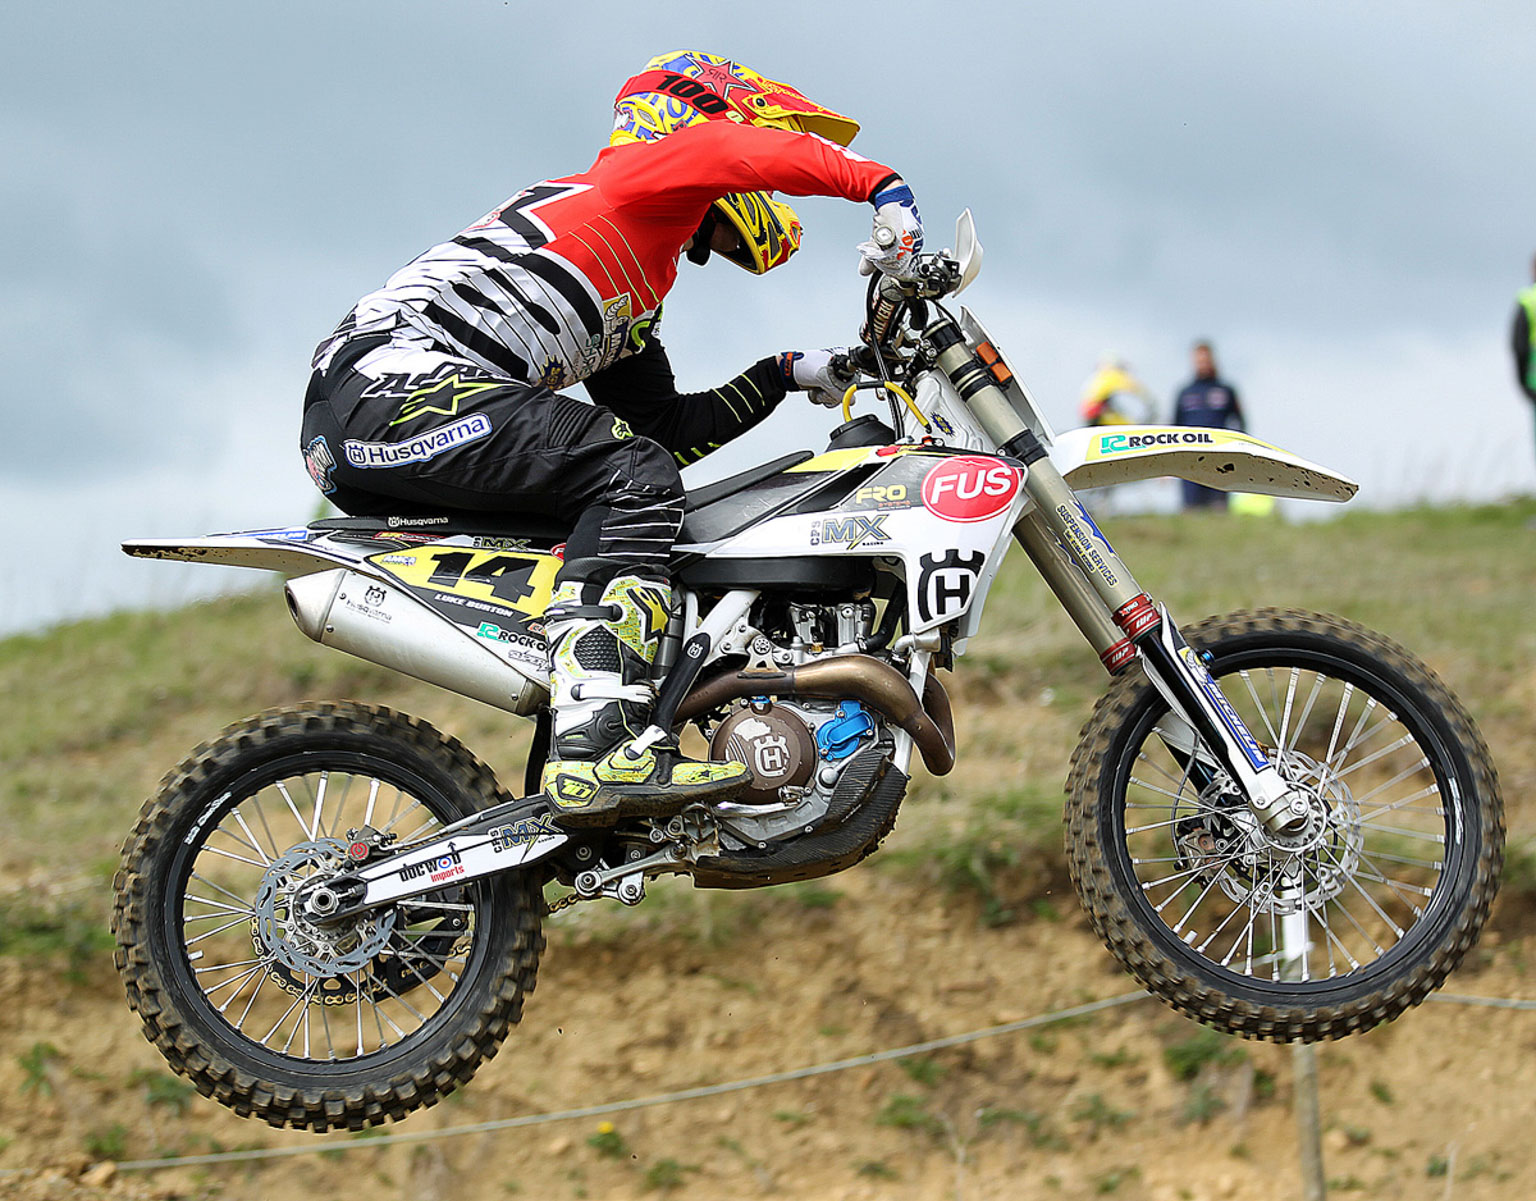 Luke Burton, the MX1 winner